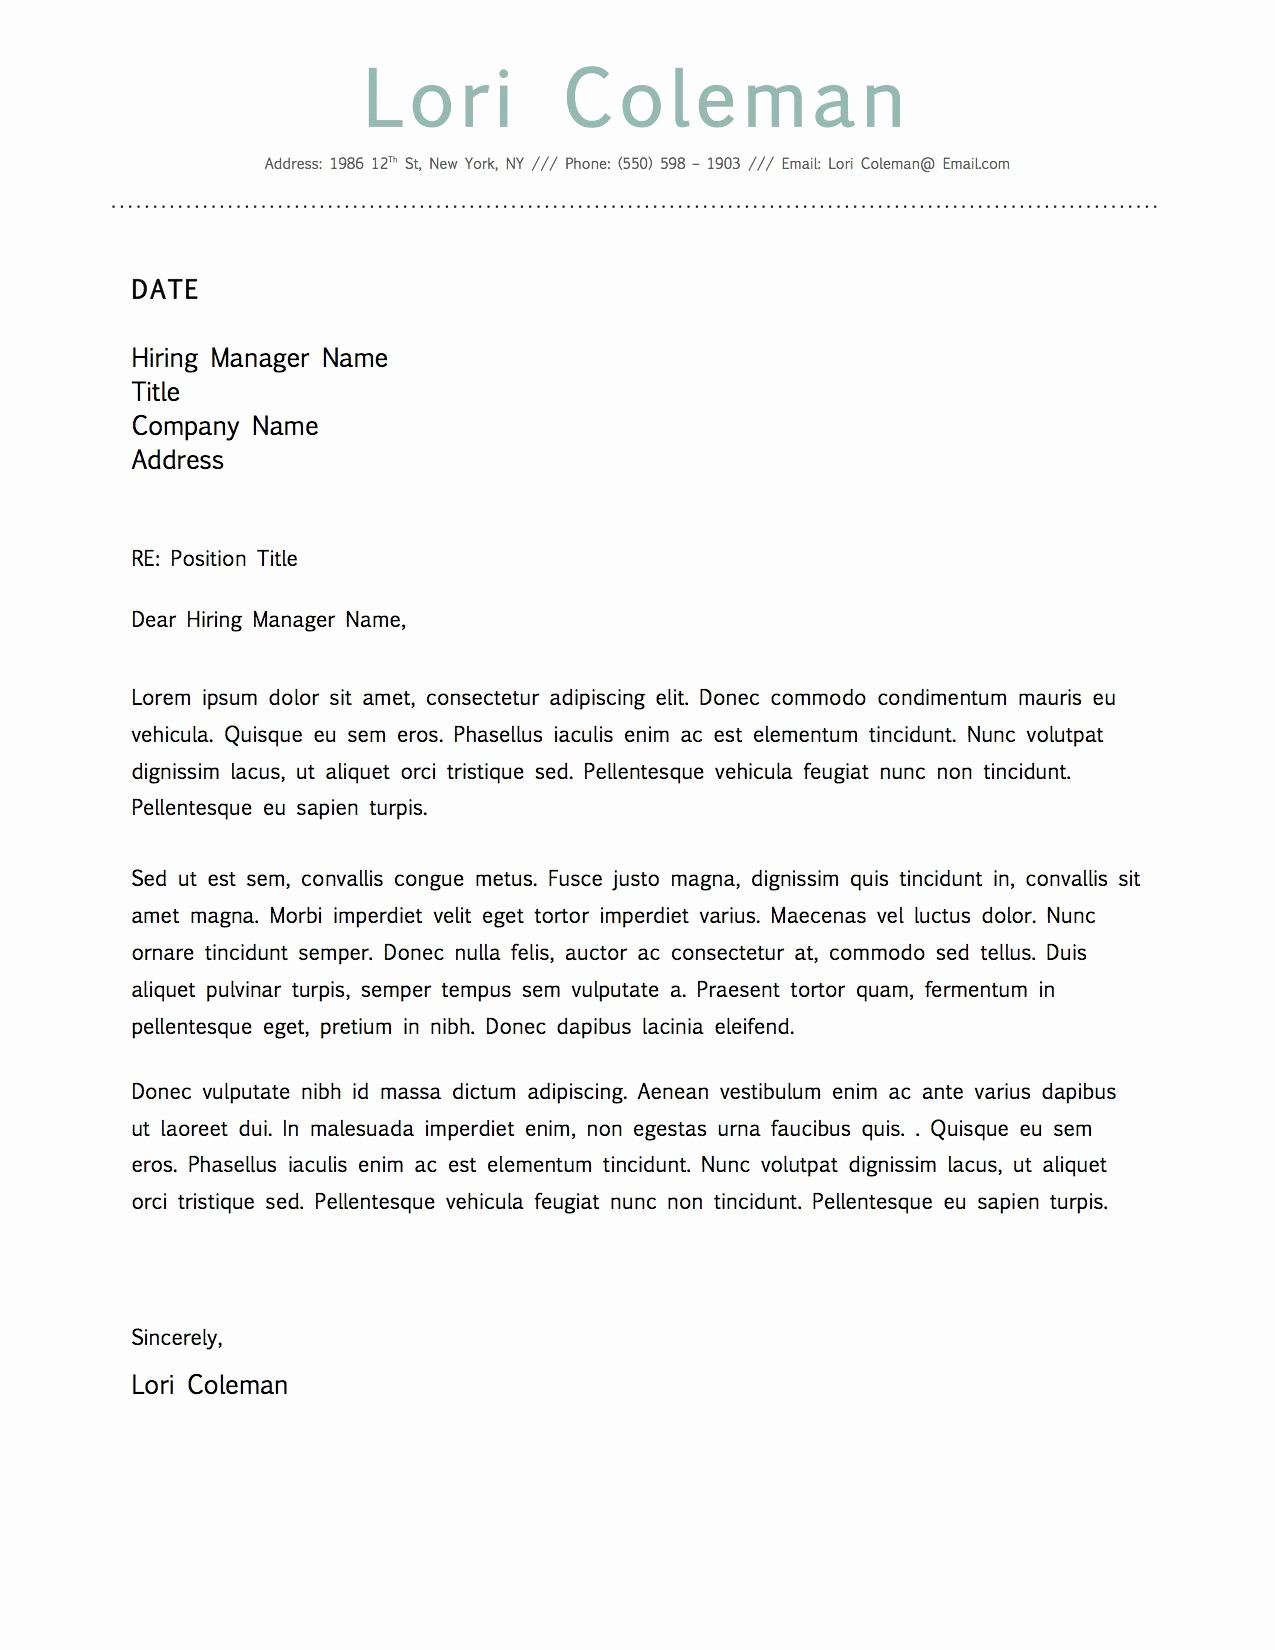 Microsoft Word Cover Letter Templates Elegant Simple Beautiful Cover Letter Template for Microsoft Word